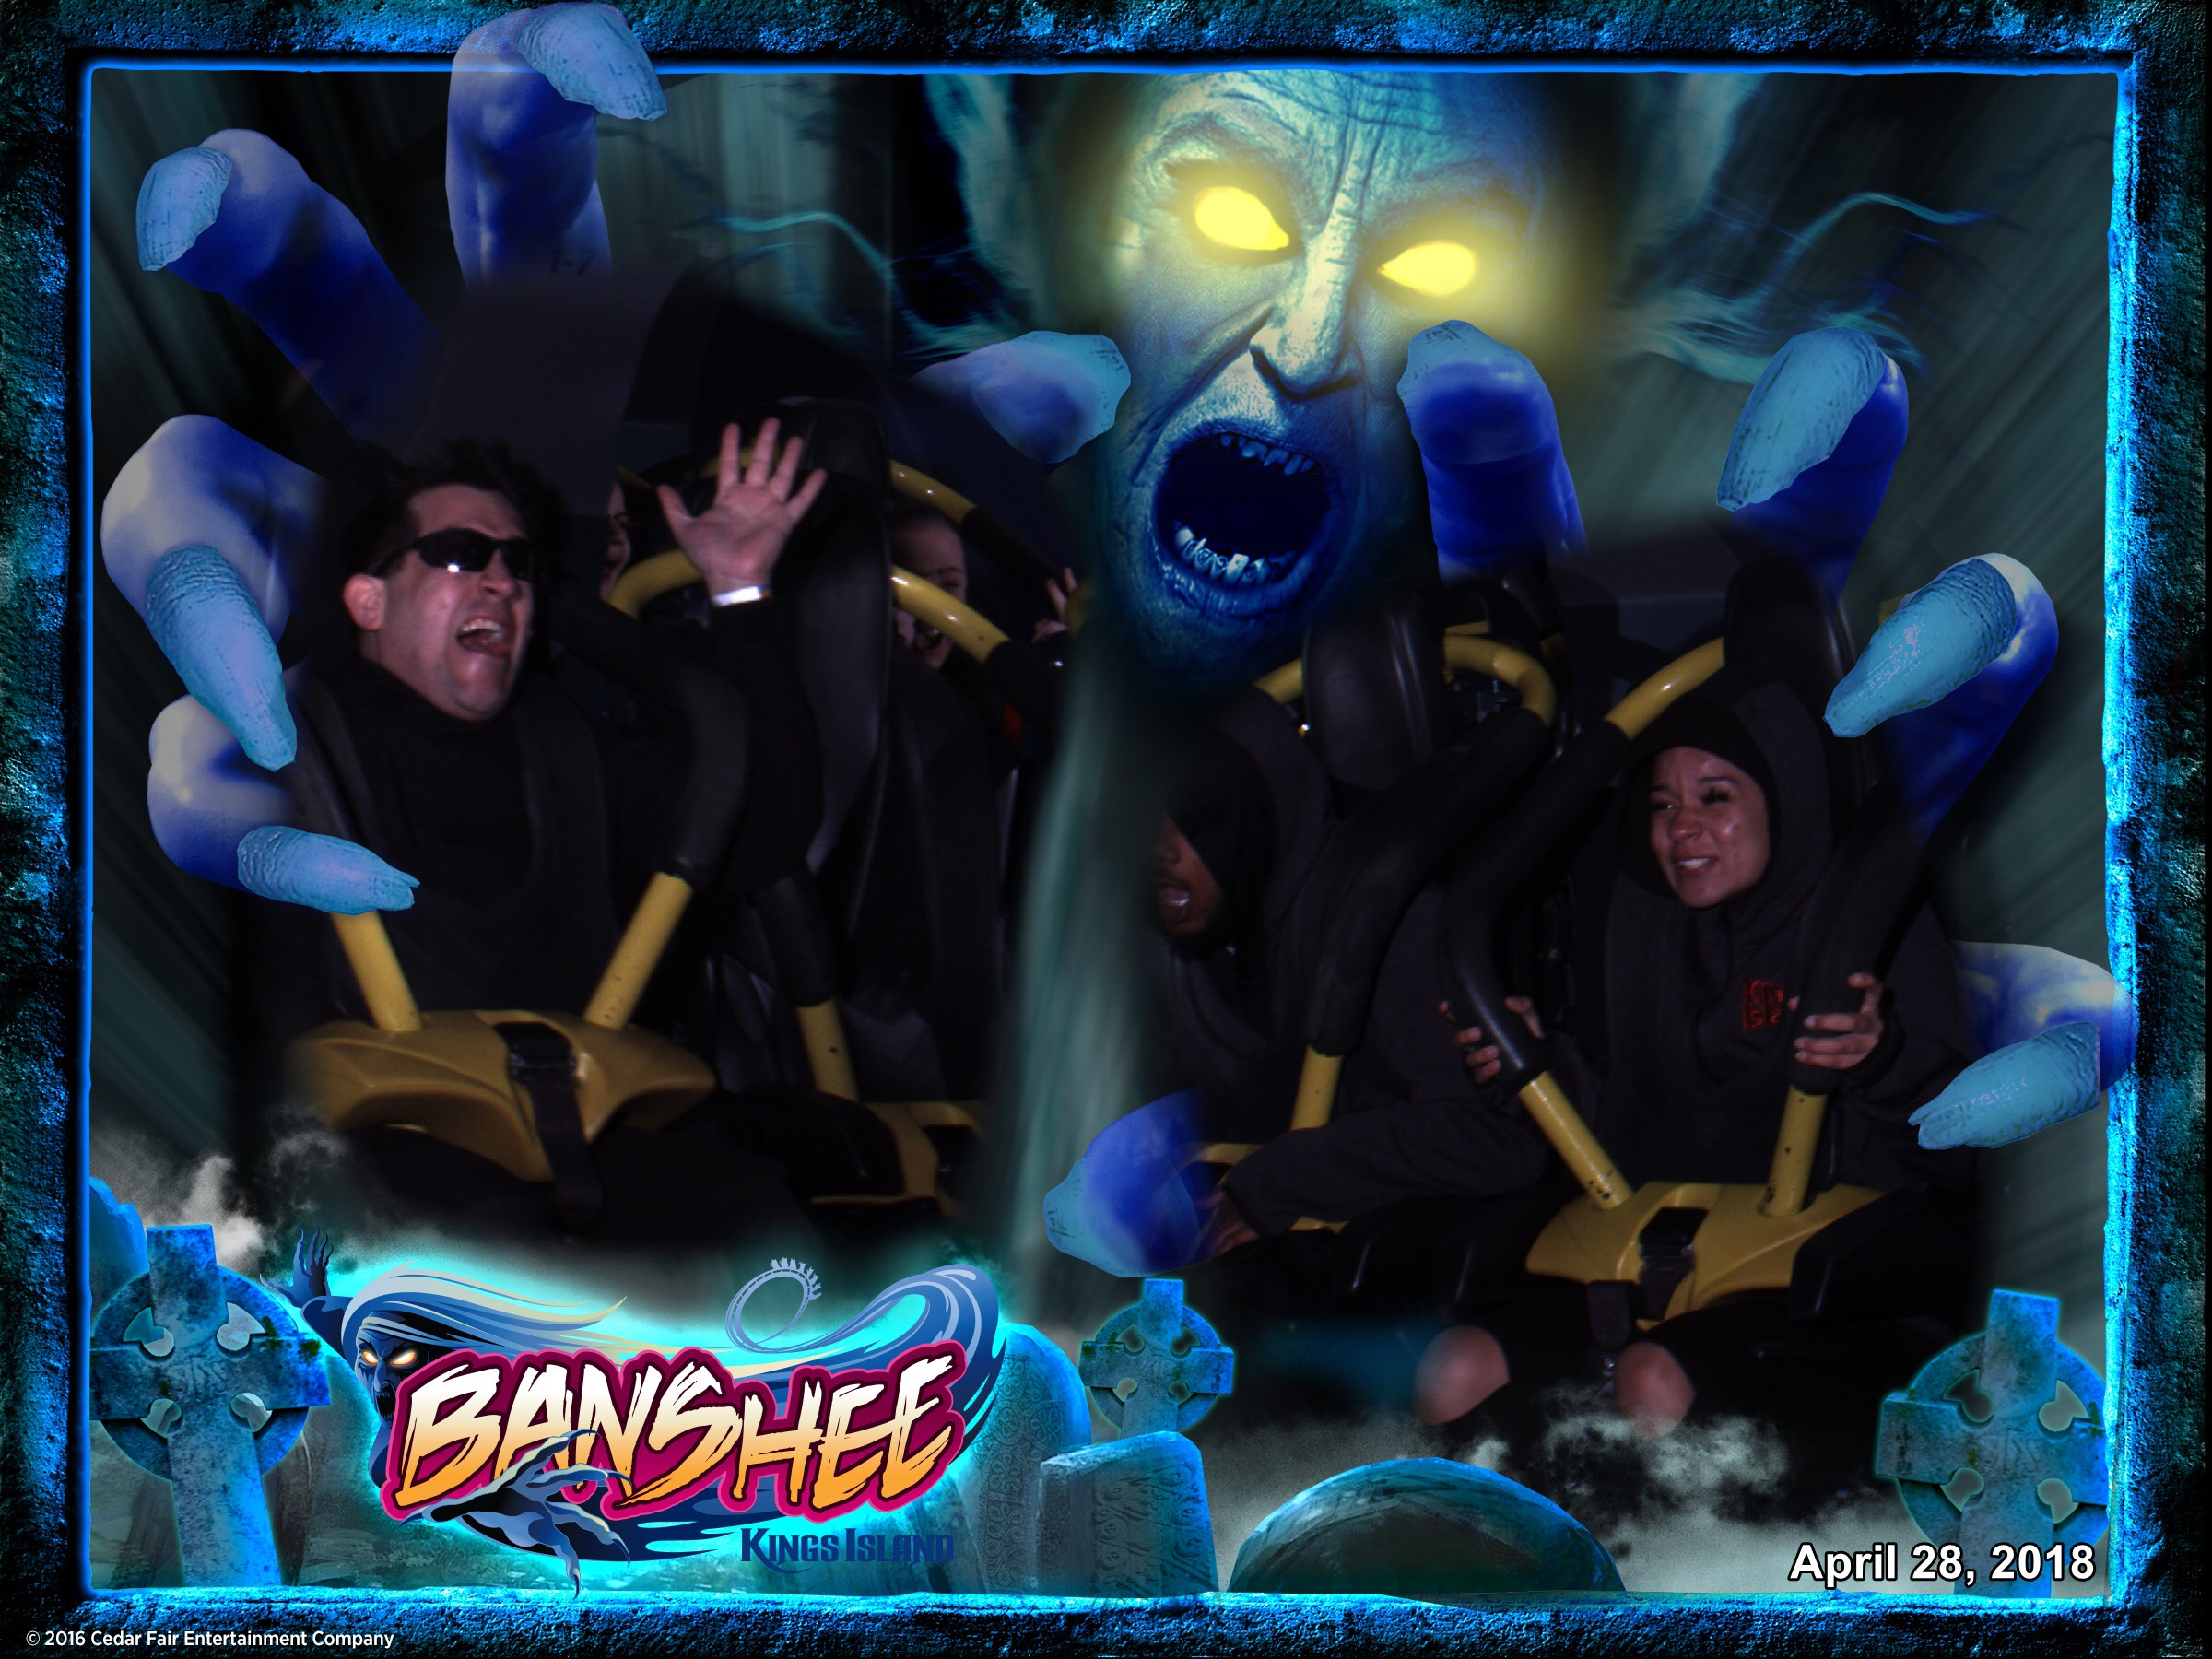 connor goodwolf theme parks kings island banshee 04282018